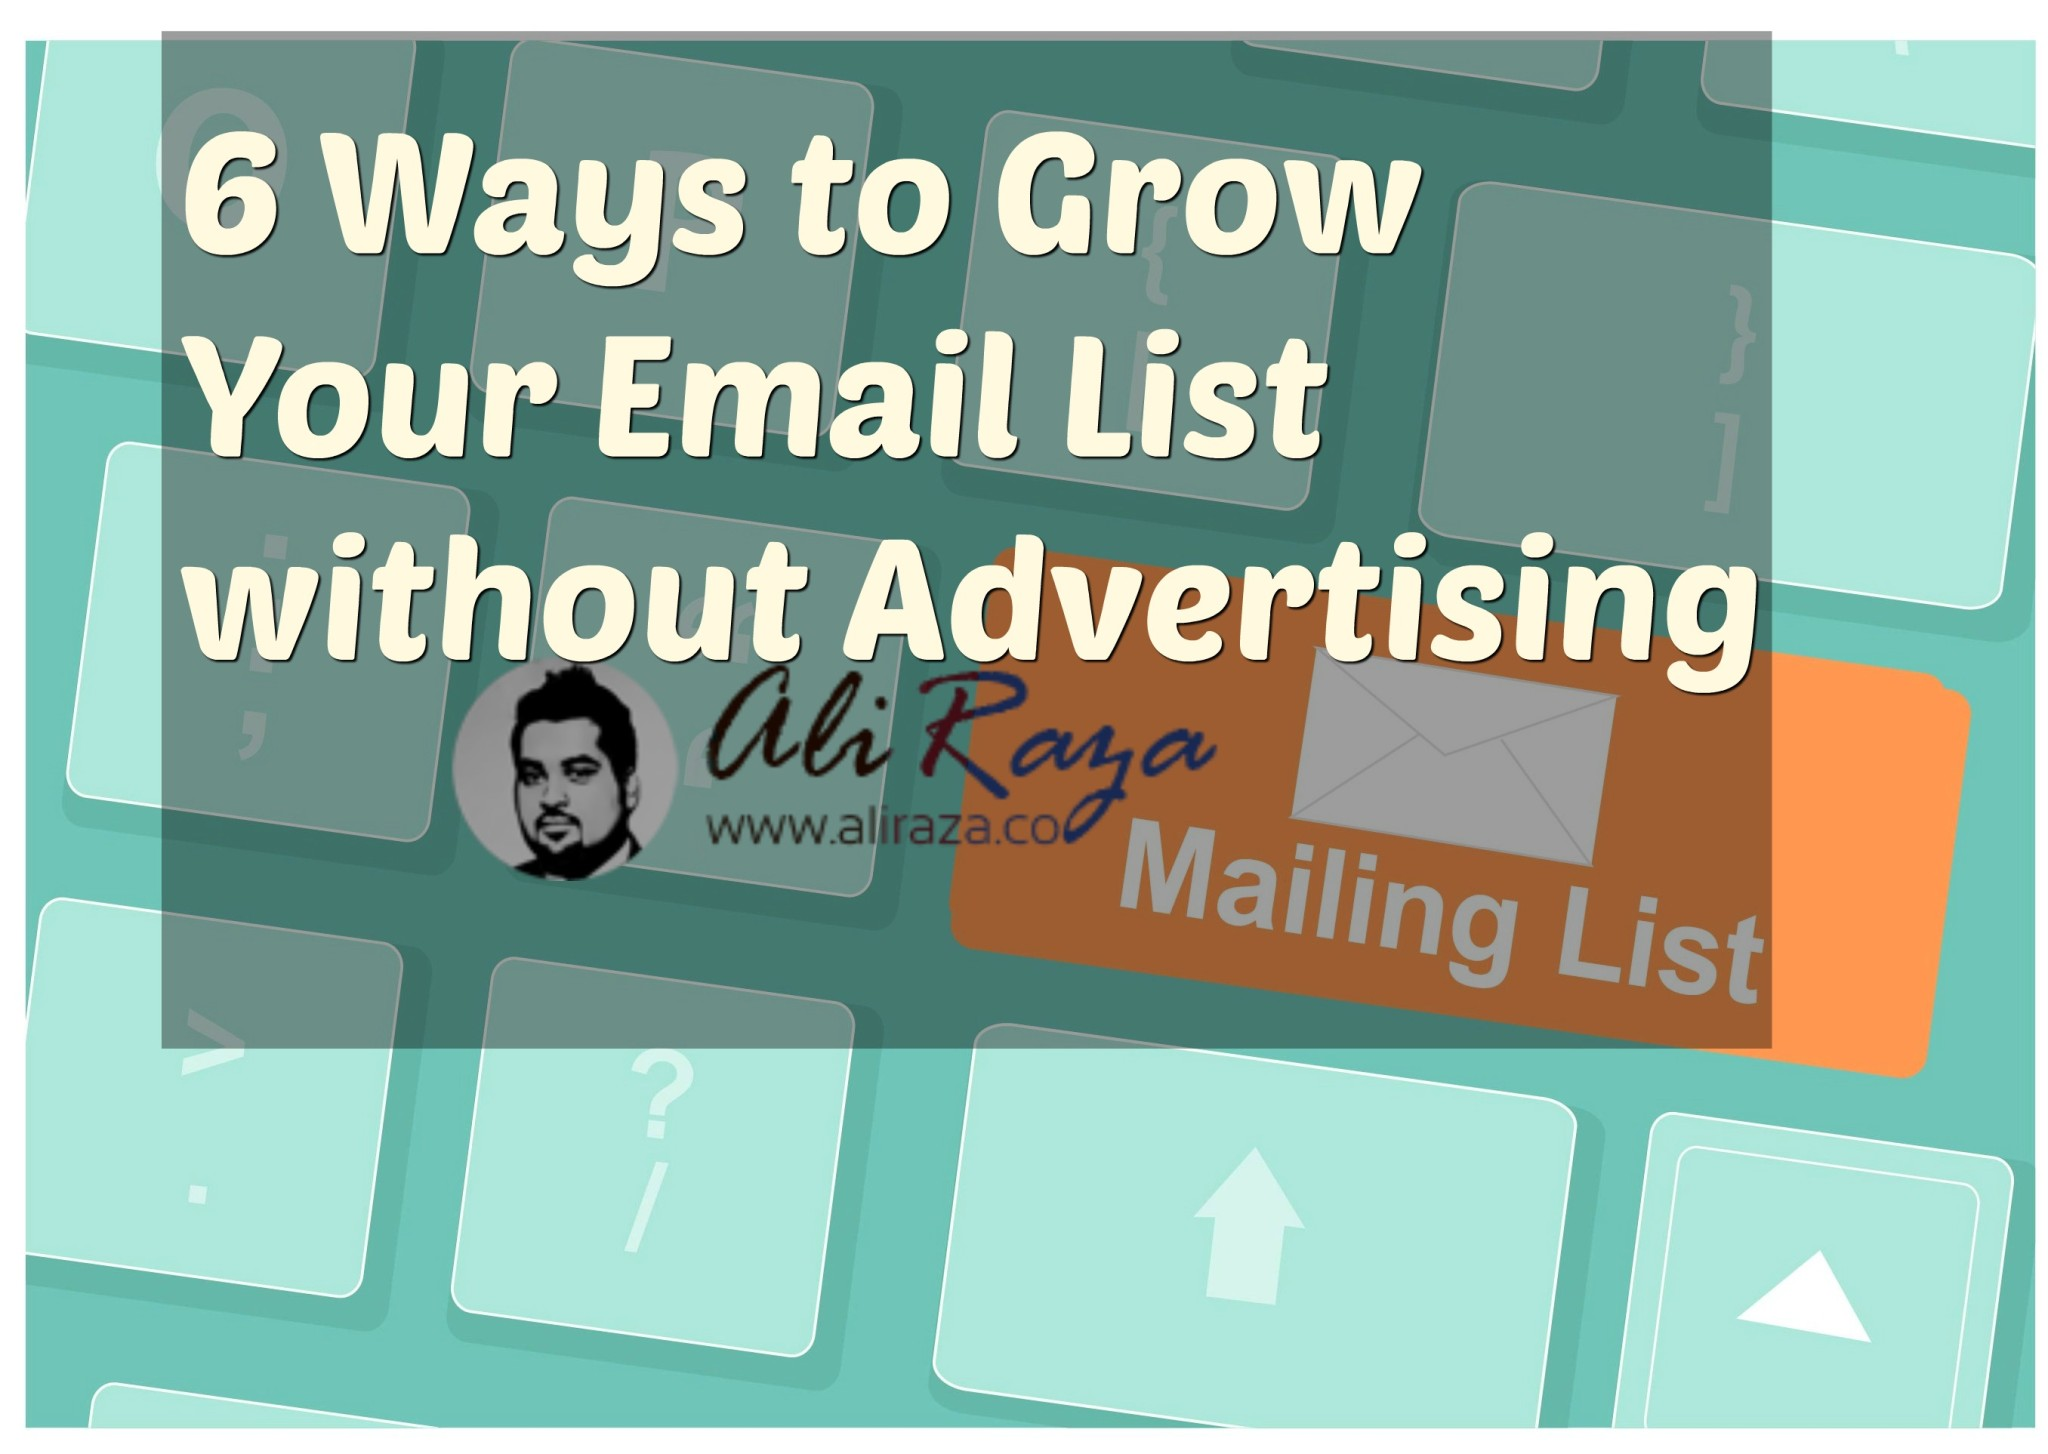 6 Ways to Grow Your Email List without Advertising